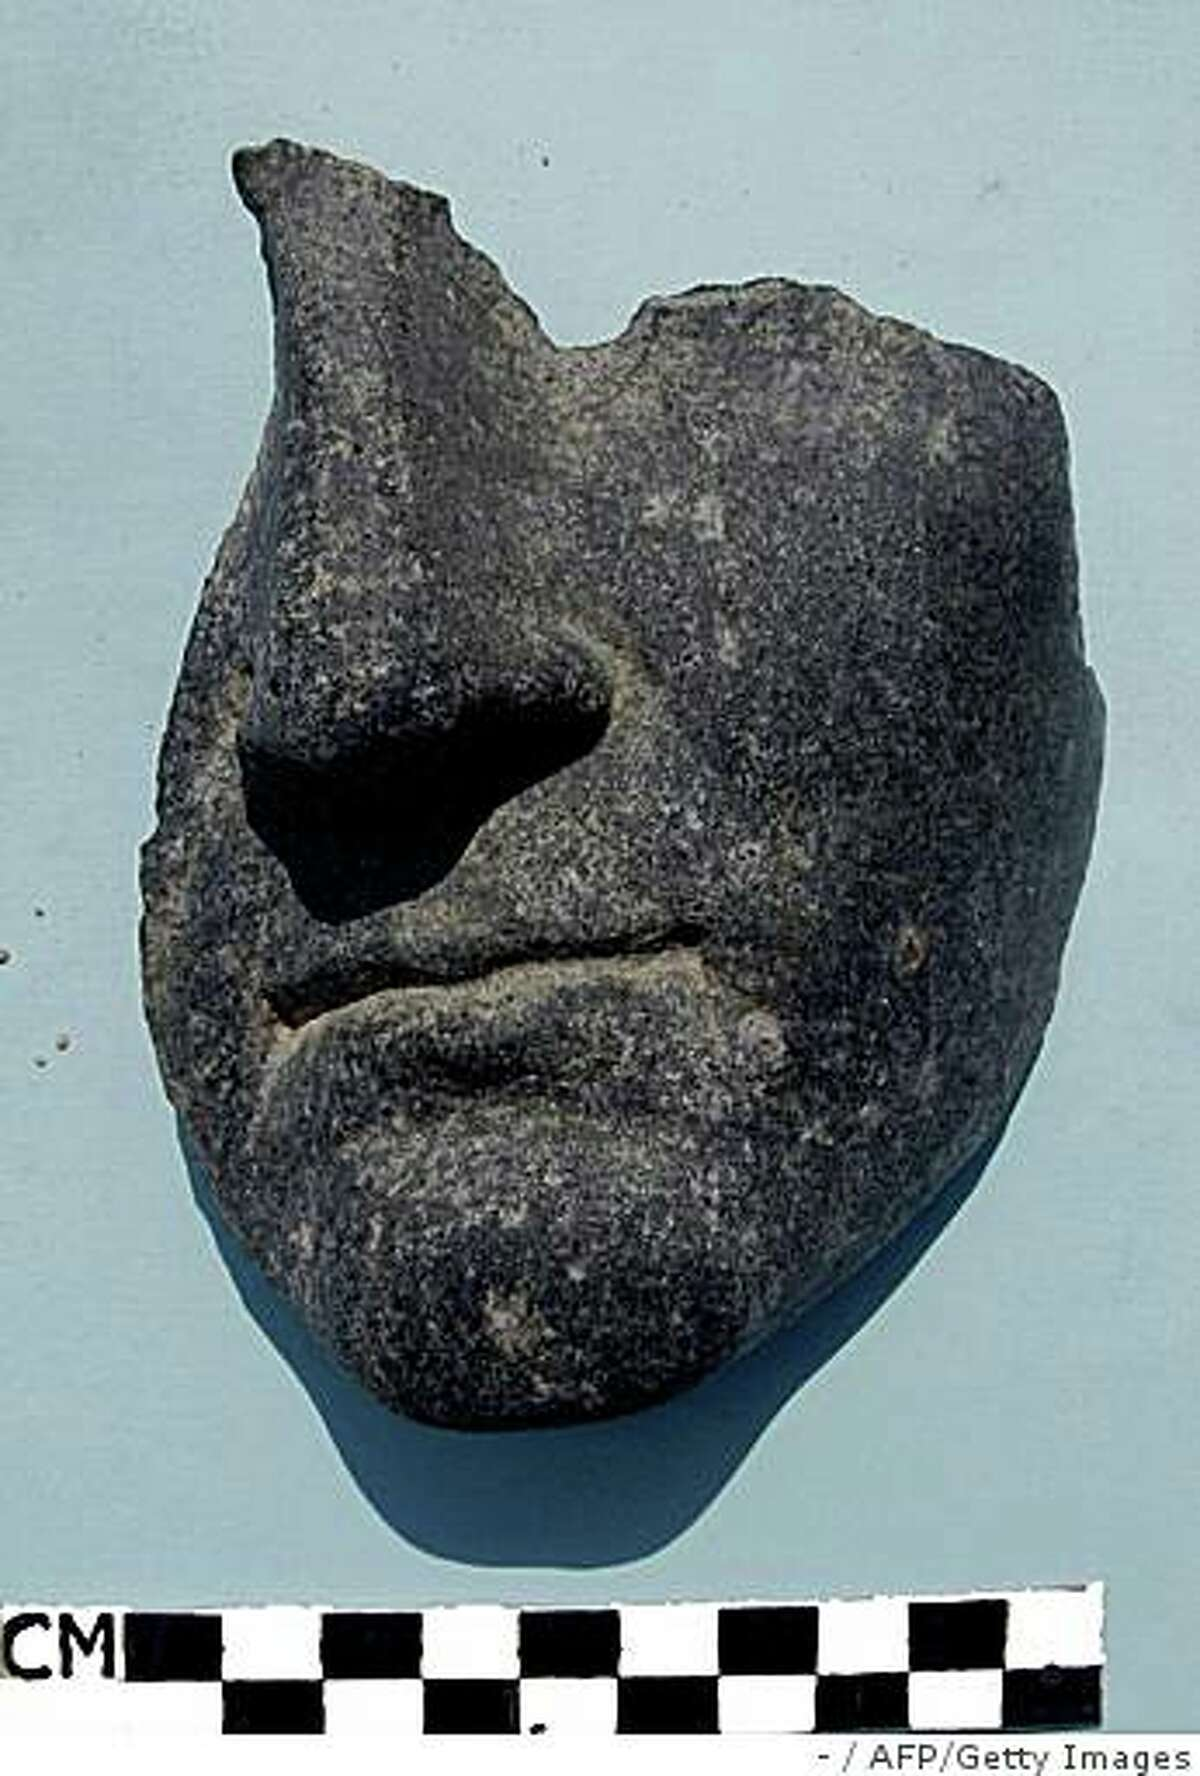 A recent undated handout picture from the Egyptian Supreme Council of Antiquities shows a recently discovered funerary mask depicting a man with a left chin at the Taposiris Magna temple, West of Alexandria. An archaeological team from Egypt and the Dominican Republic completed a three-year radar survey of Taposiris Magna as part of the search for the tomb of Cleopatra and Mark Antony, according to the SCA in a press statement released on April 15, 2009. AFP PHOTO/HO/EGYPTIAN SUPREME COUNCIL OF ANTIQUITIES == RESTRICTED TO EDITORIAL USE == (Photo credit should read -/AFP/Getty Images)